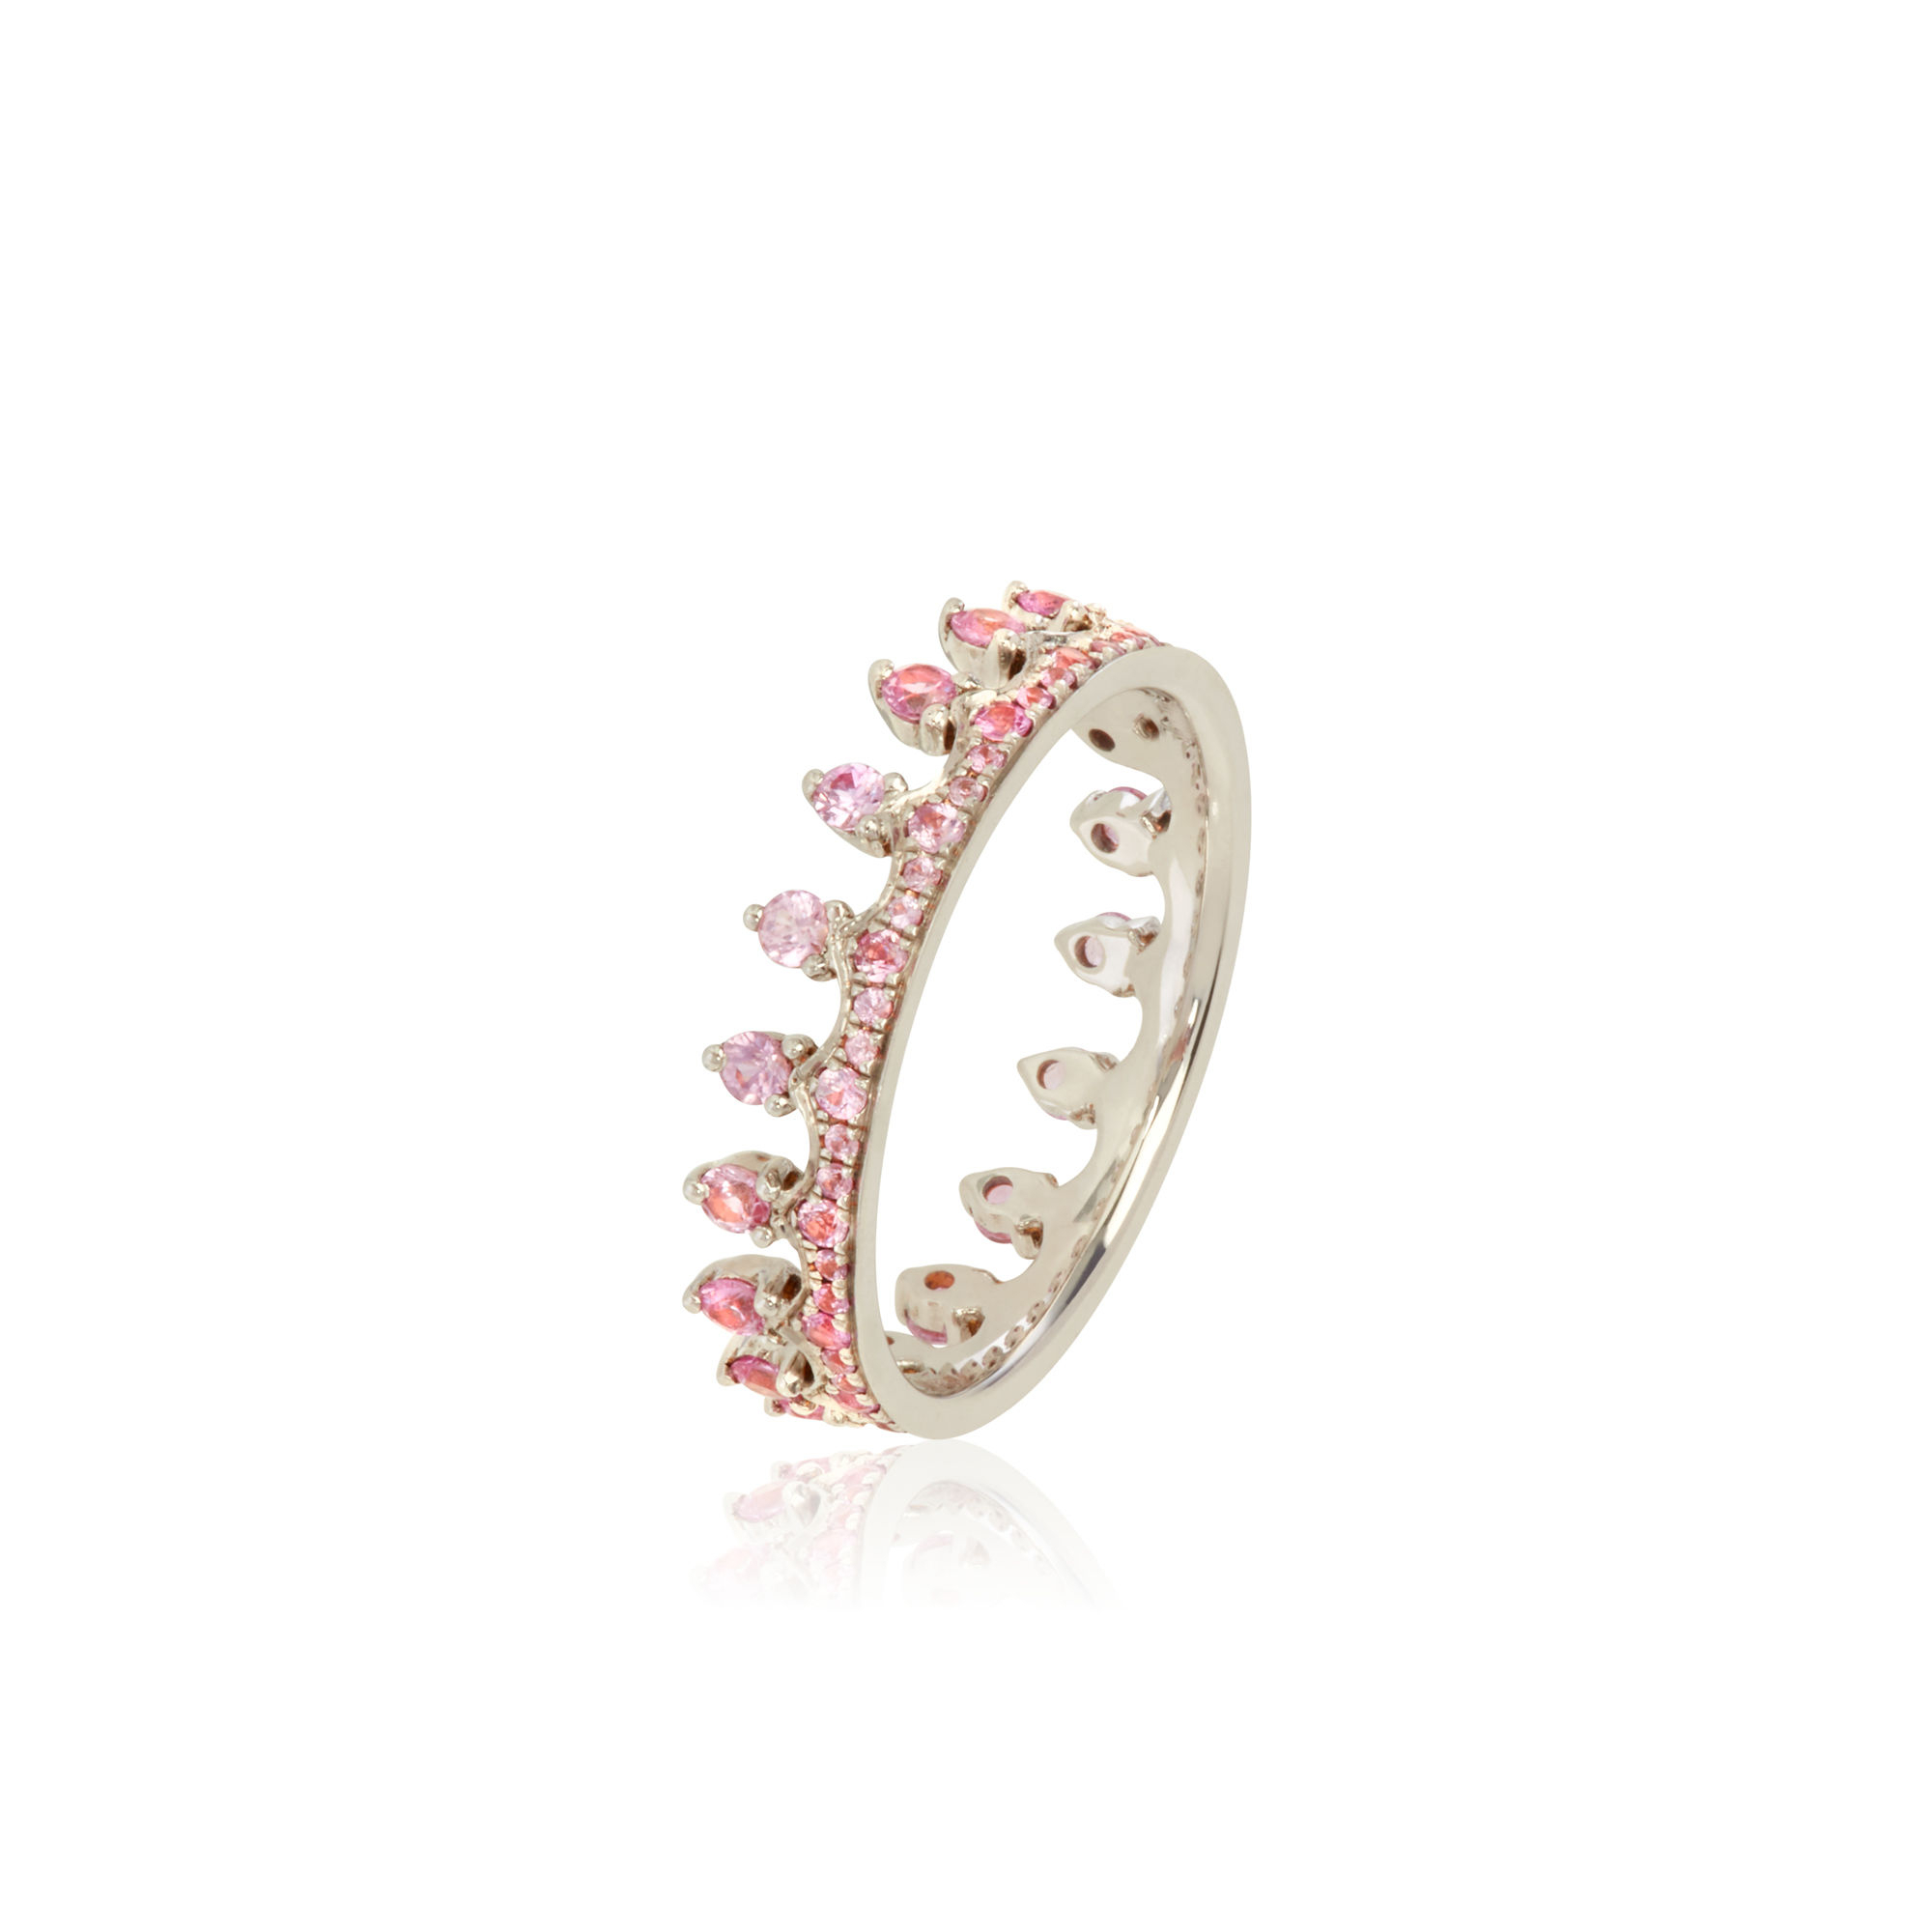 Crown 18ct White Gold Pink Sapphire Ring With Regard To Latest Pink Sparkling Crown Rings (View 5 of 25)